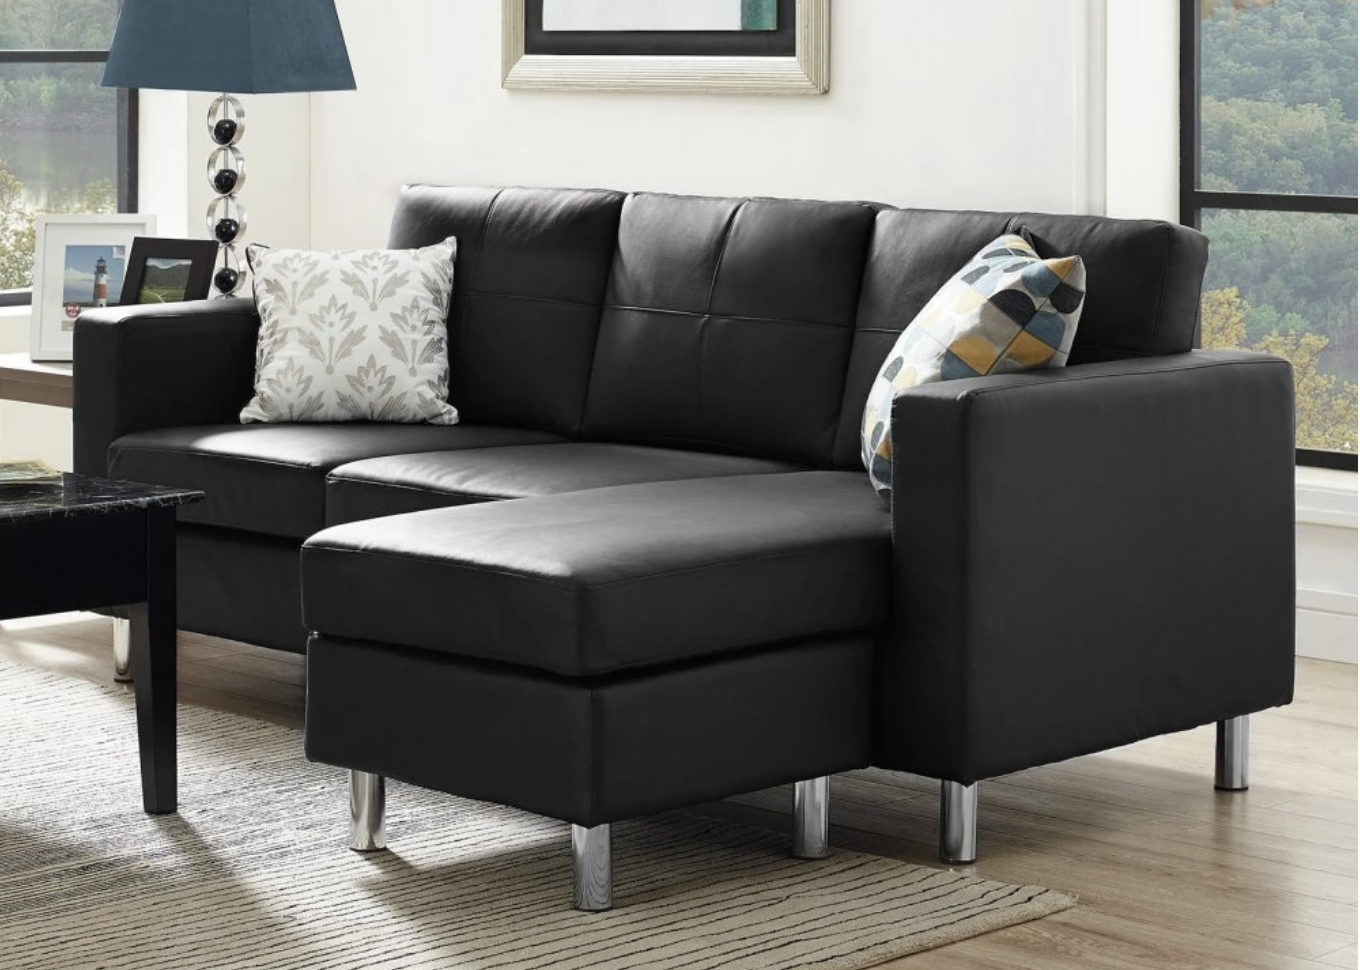 75 Modern Sectional Sofas For Small Spaces (2018) Inside Well Liked Sectional Sofas For Small Doorways (Gallery 9 of 15)